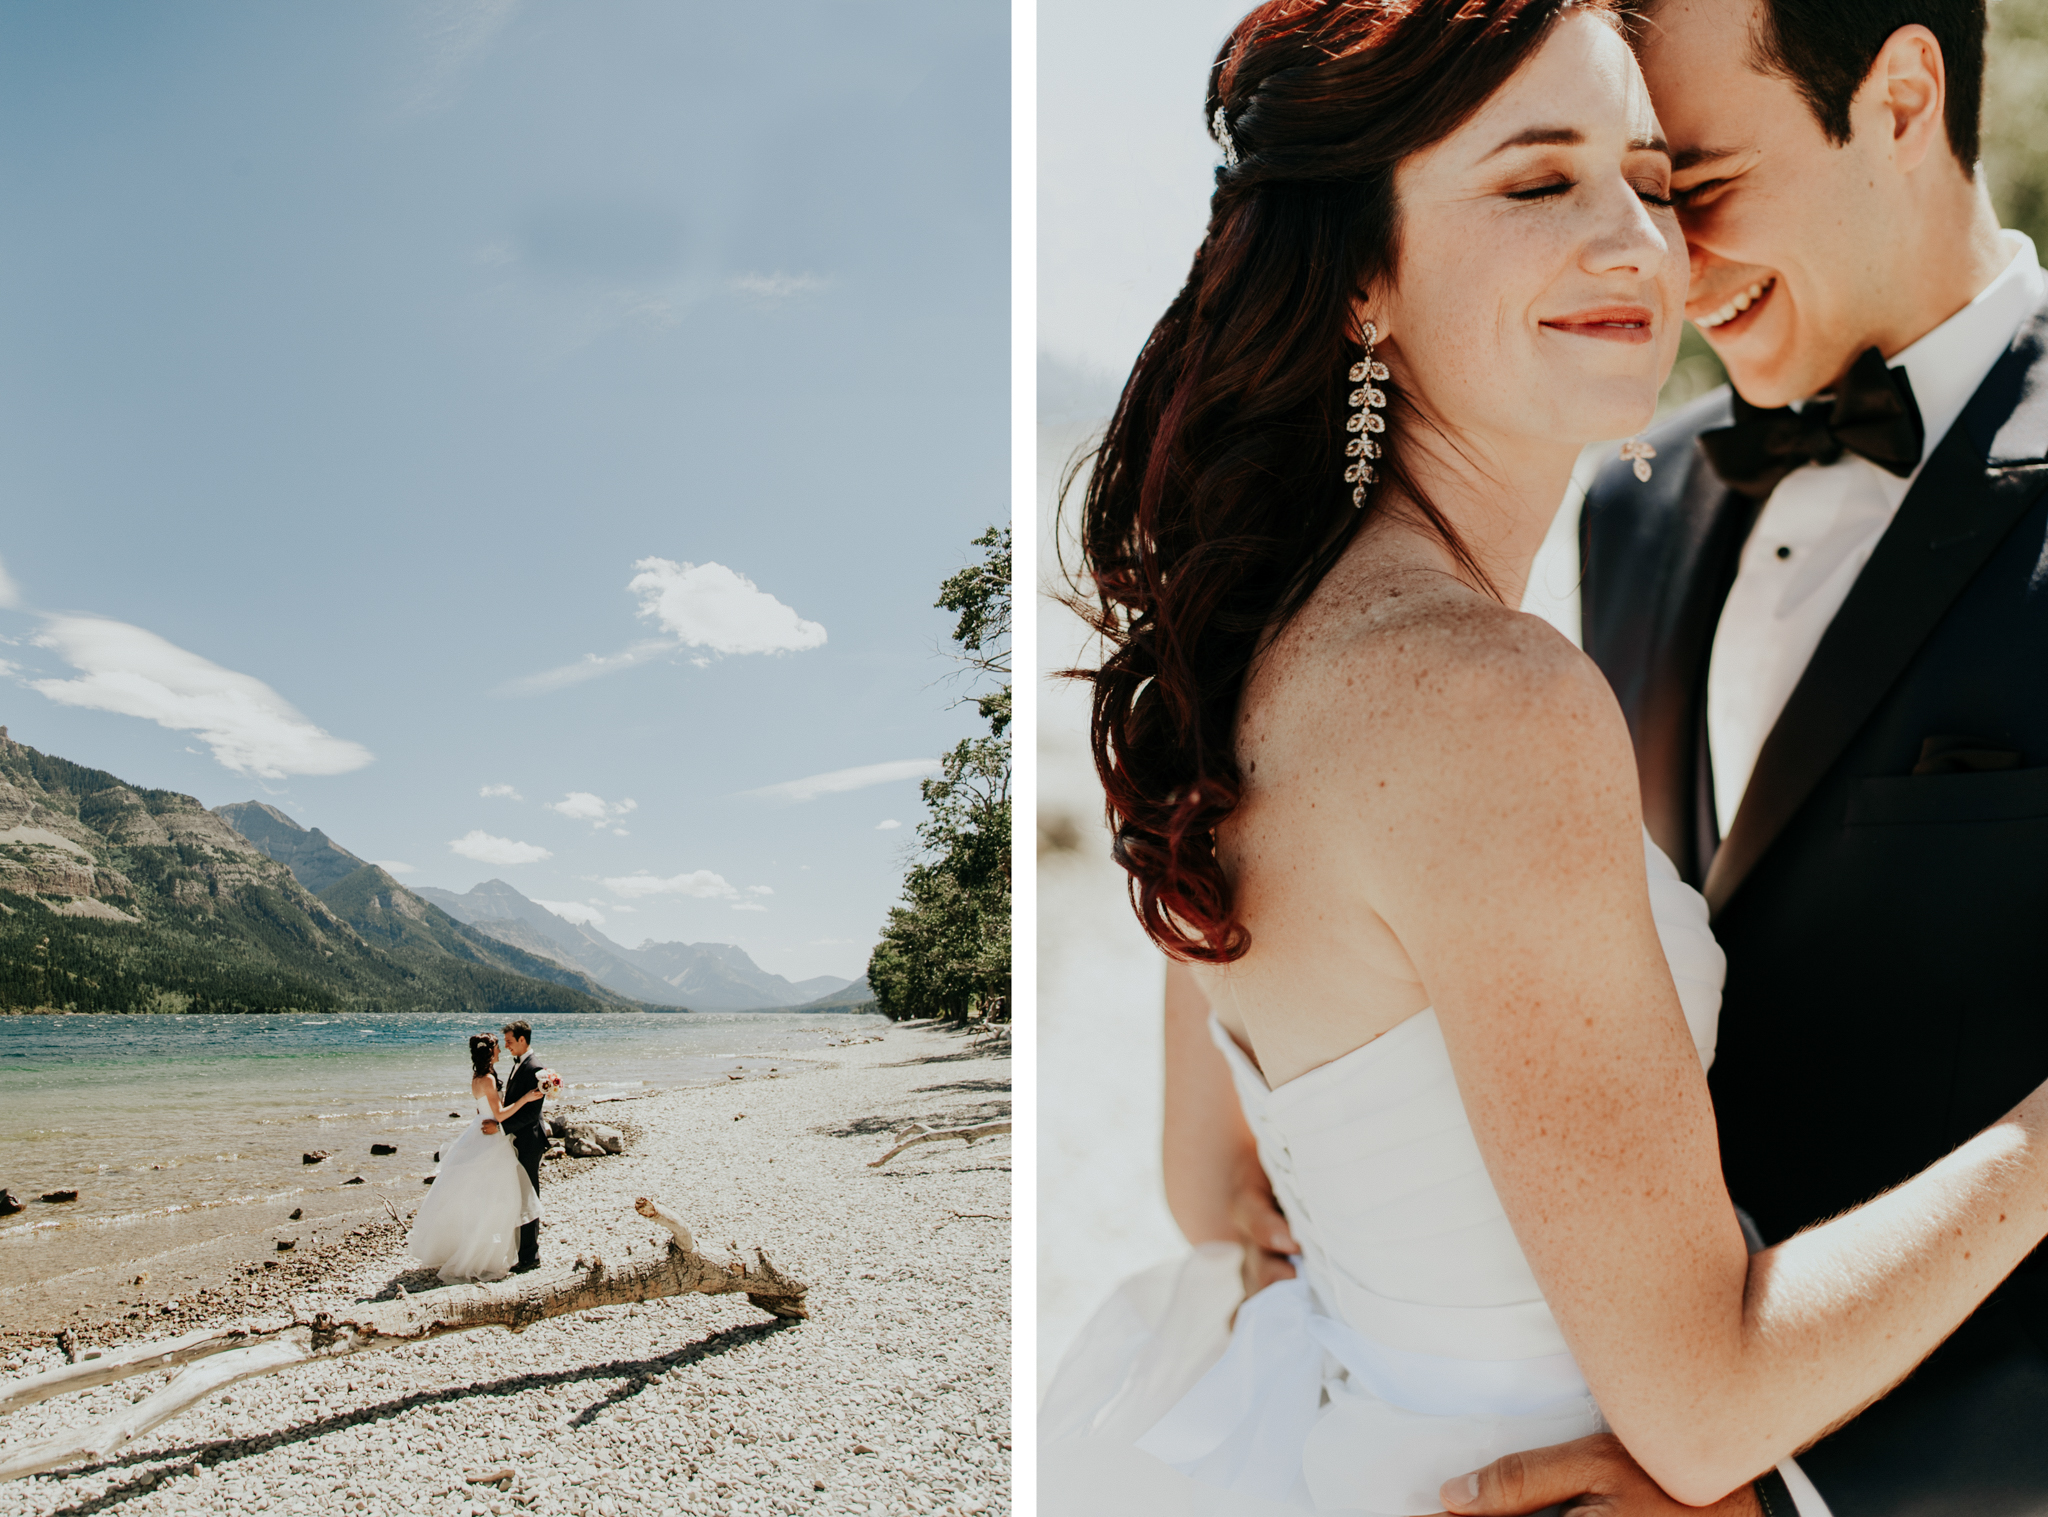 waterton-wedding-photographer-love-and-be-loved-photography-lethbridge-calgary-adam-jodie-image-picture-photo-112.jpg